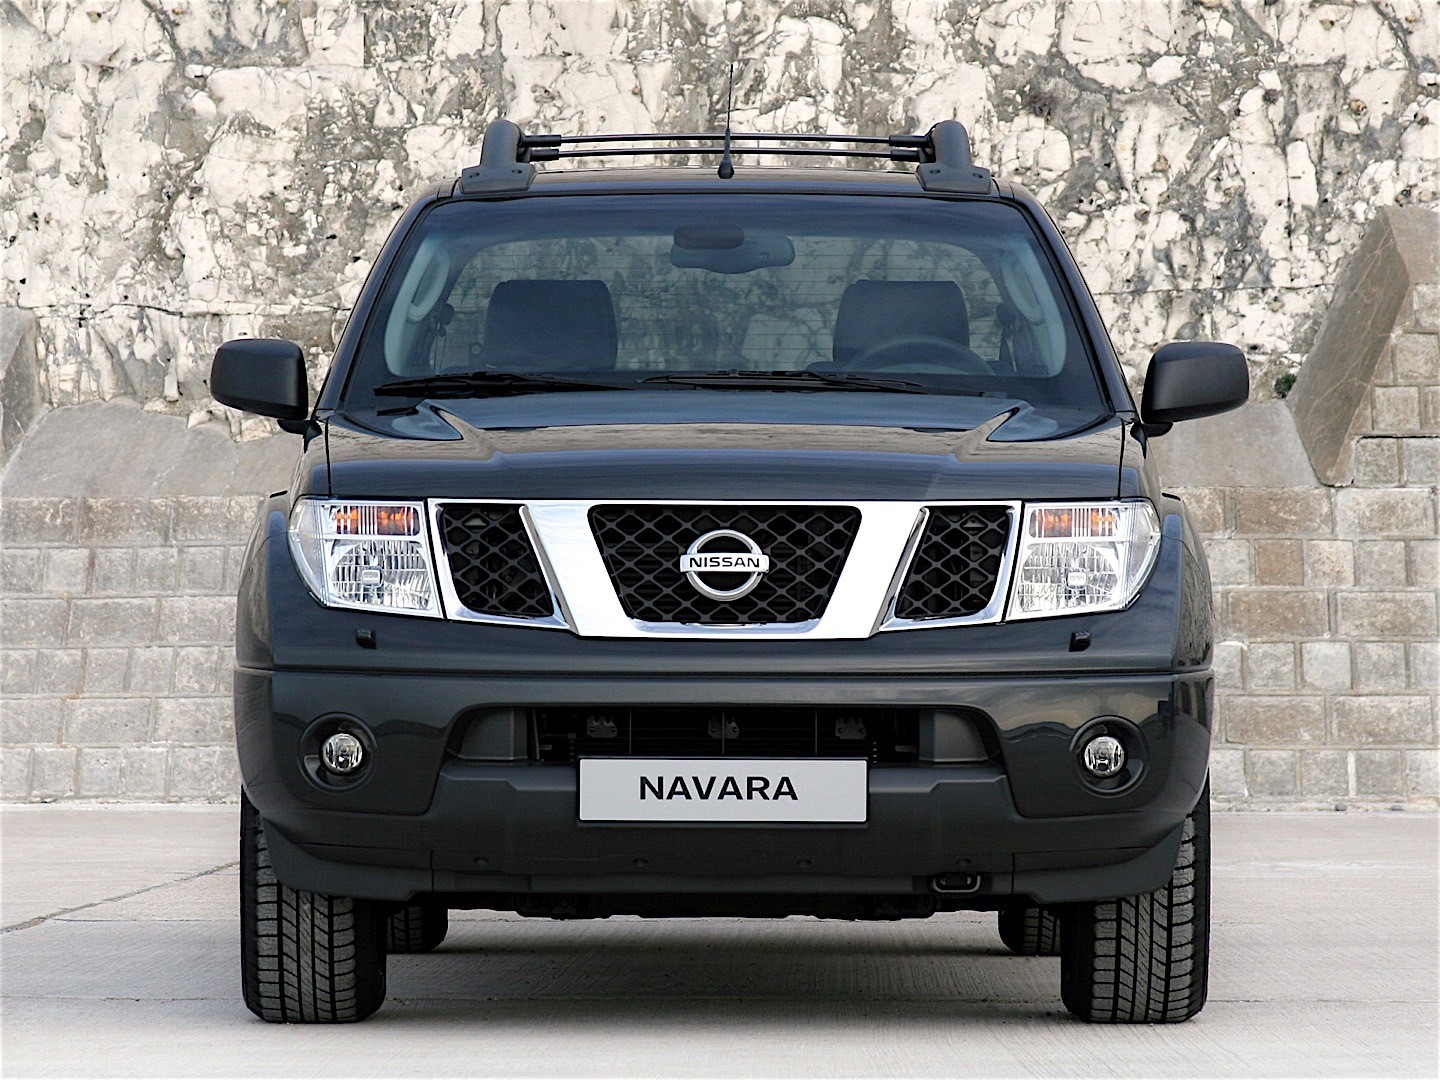 Nissan Frontier Towing Capacity >> NISSAN Navara / Frontier Double Cab specs & photos - 2005, 2006, 2007, 2008, 2009, 2010, 2011 ...